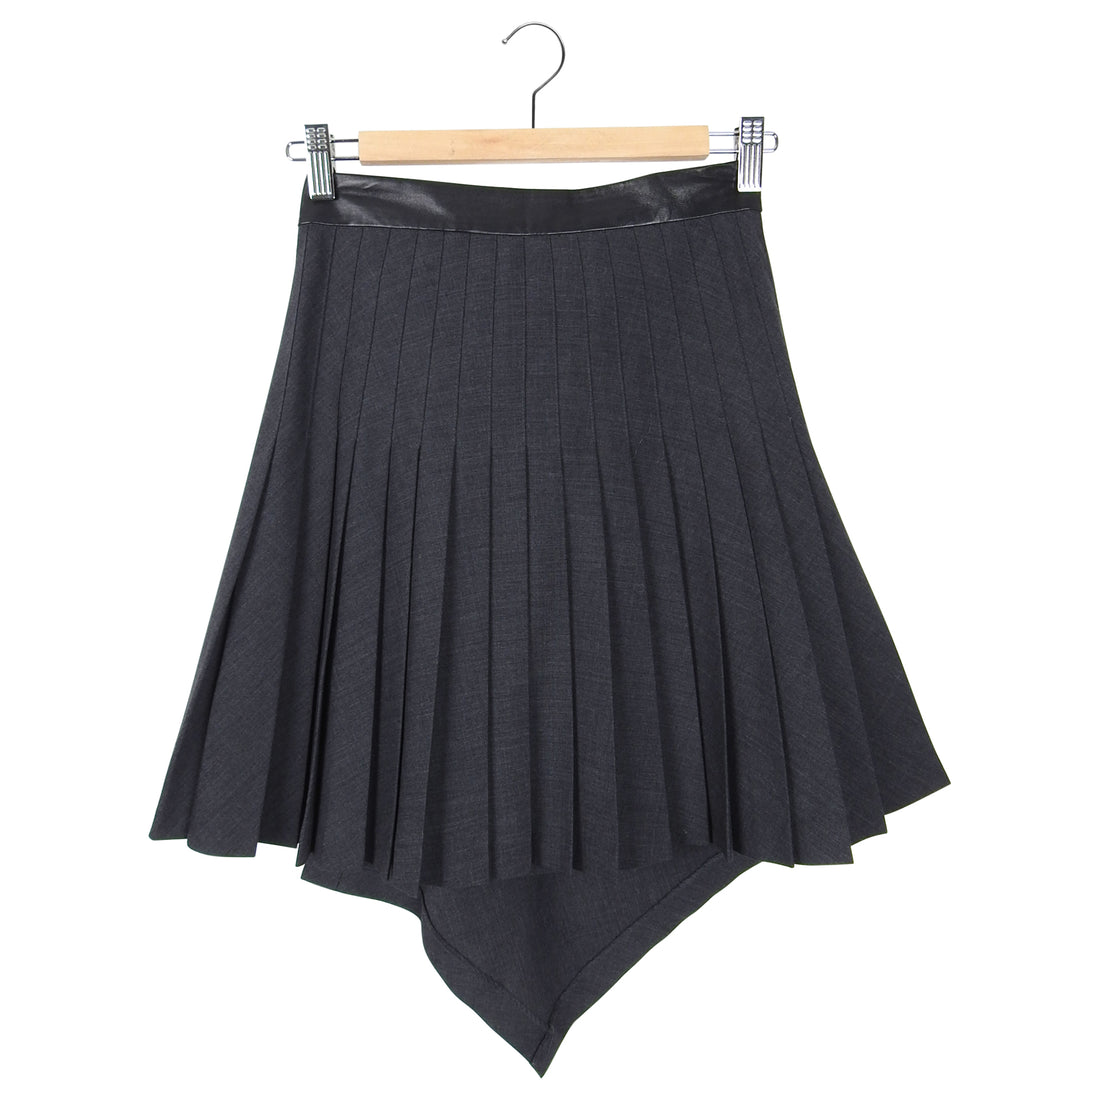 Alexander McQueen McQ Grey Pleat Leather Trim Mini Skirt - IT38 / 2